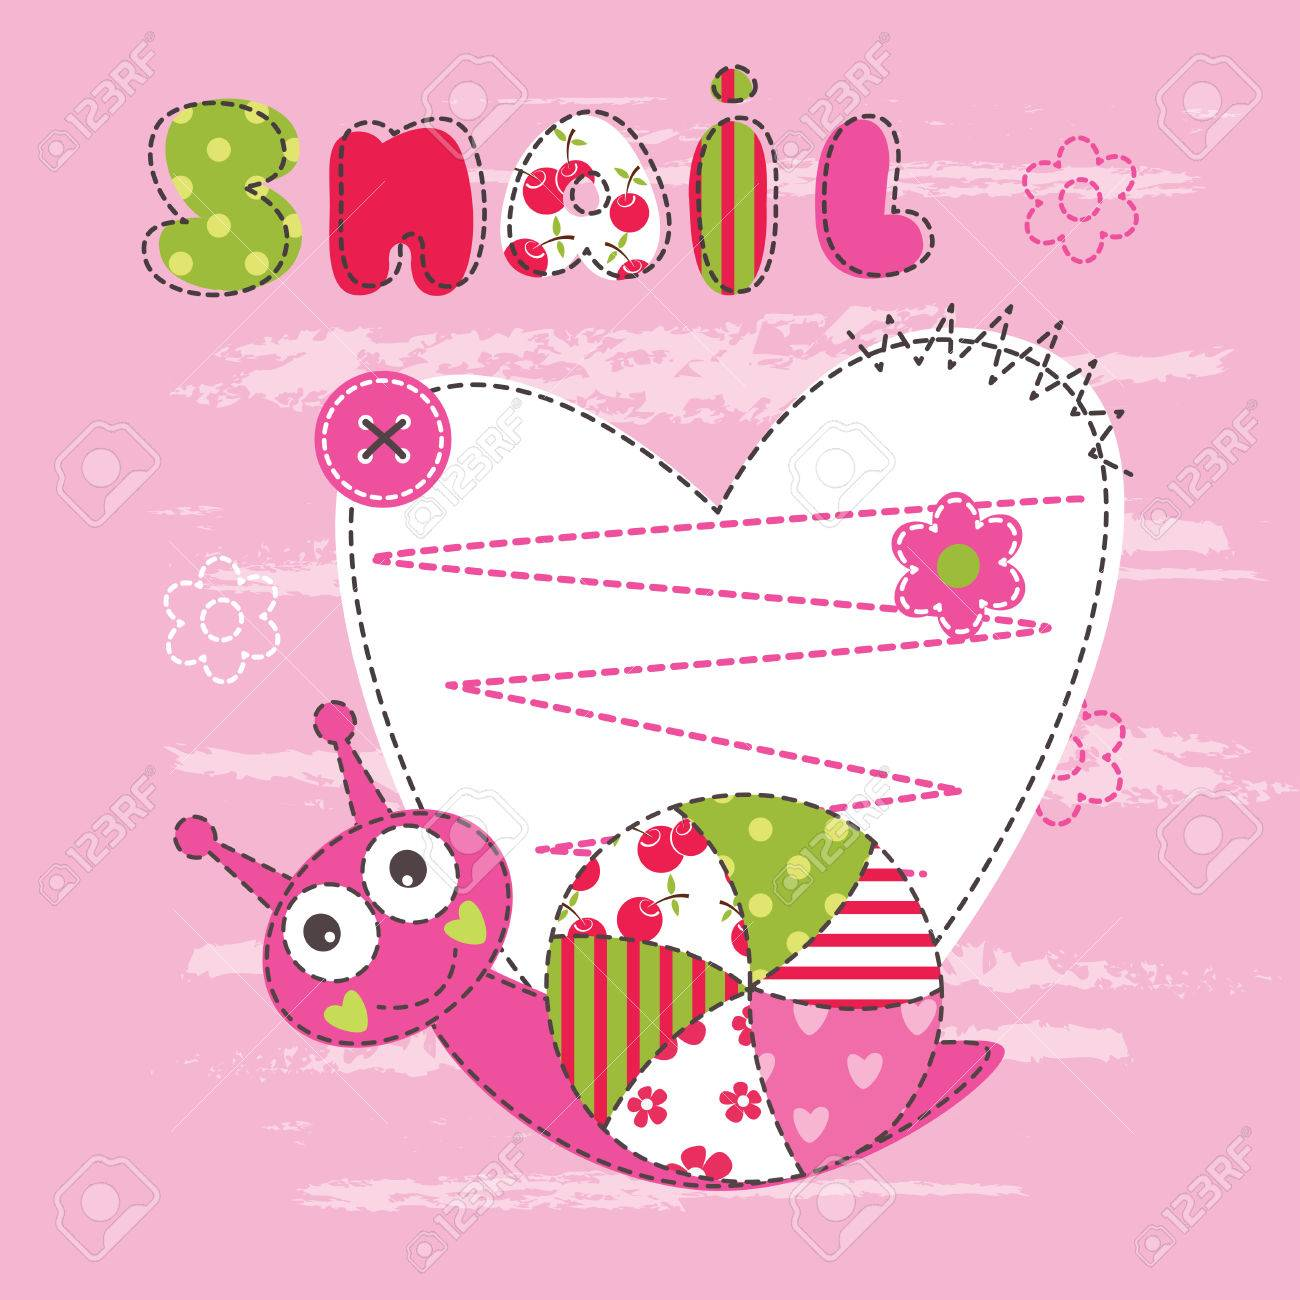 cute baby background with snail for baby shower greeting card tshirt design